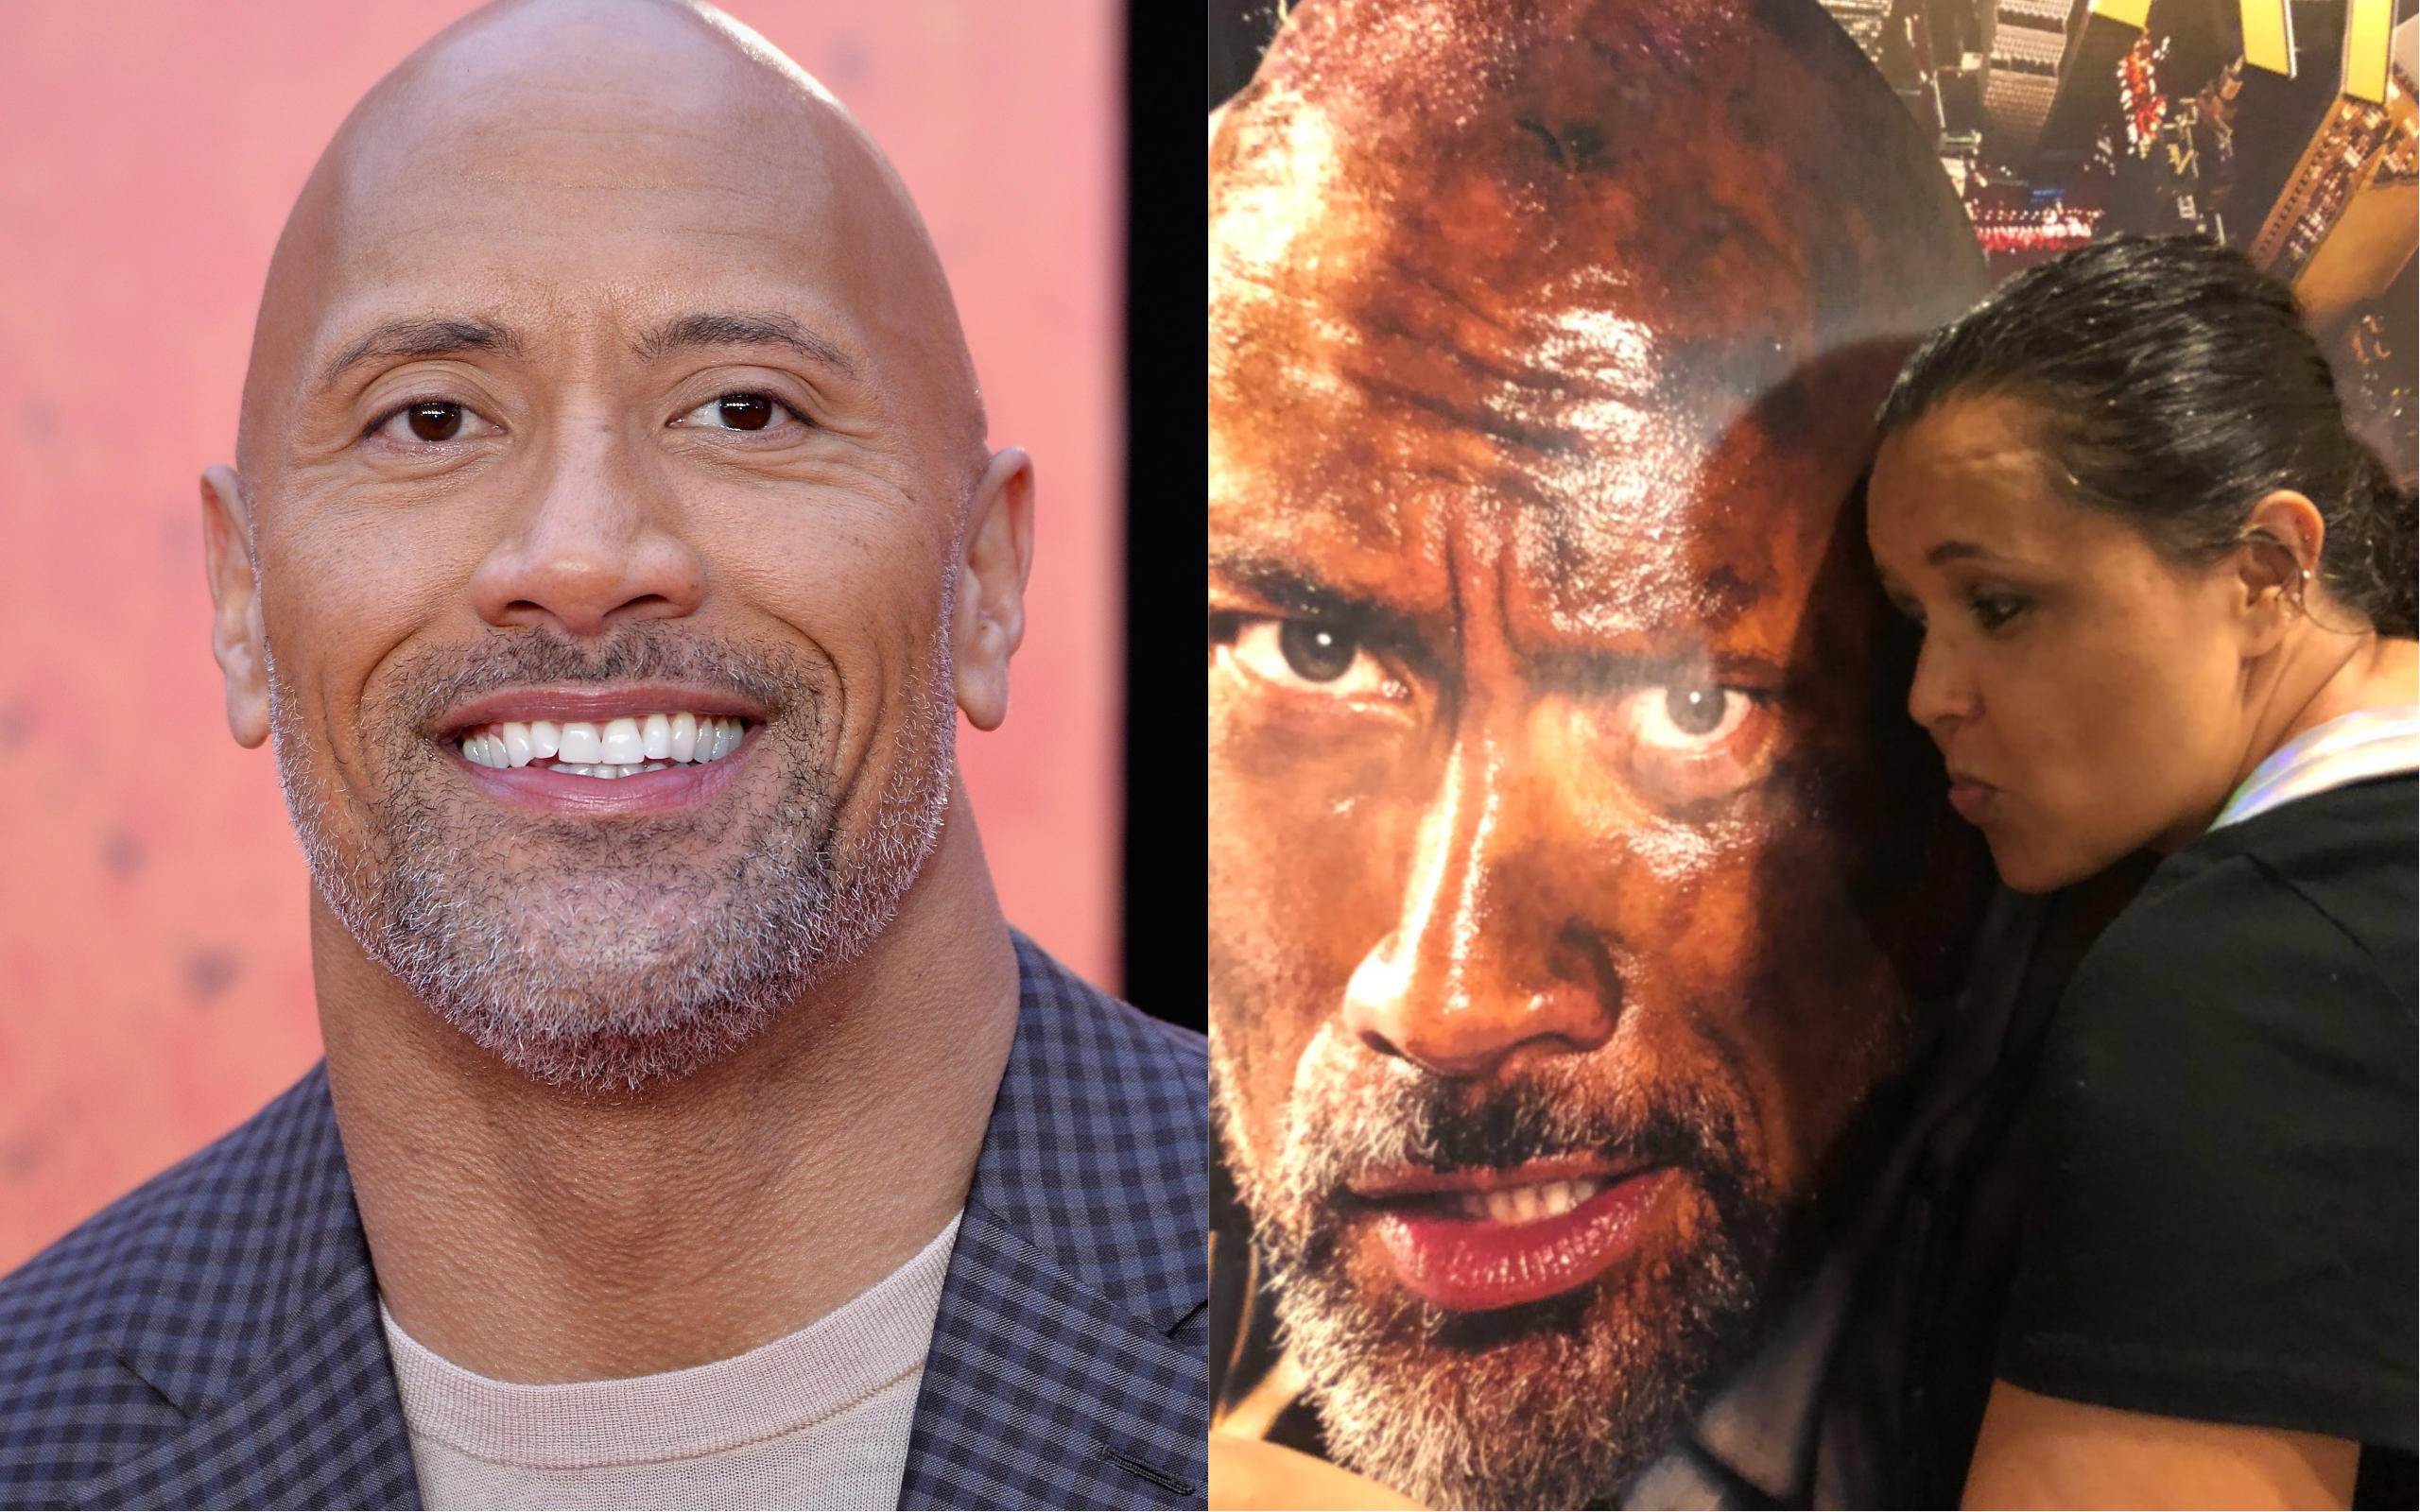 Dwayne The Rock Johnson Sends Emotional Video To Teen Who Lost His